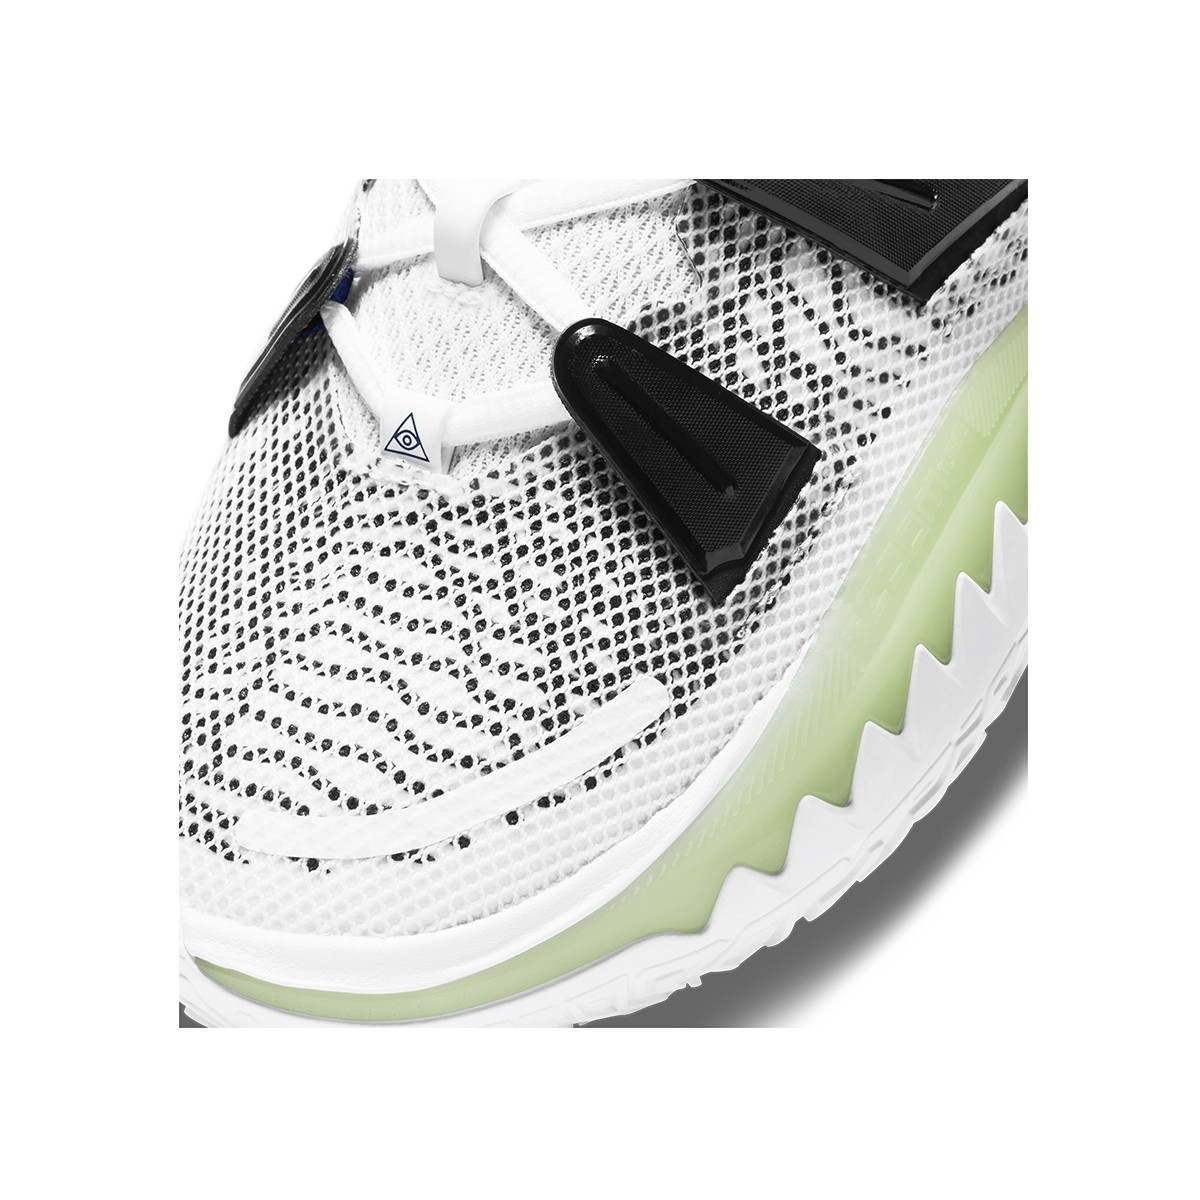 Nike Kyrie 7 'Brooklyn Beats'-CQ9326-100